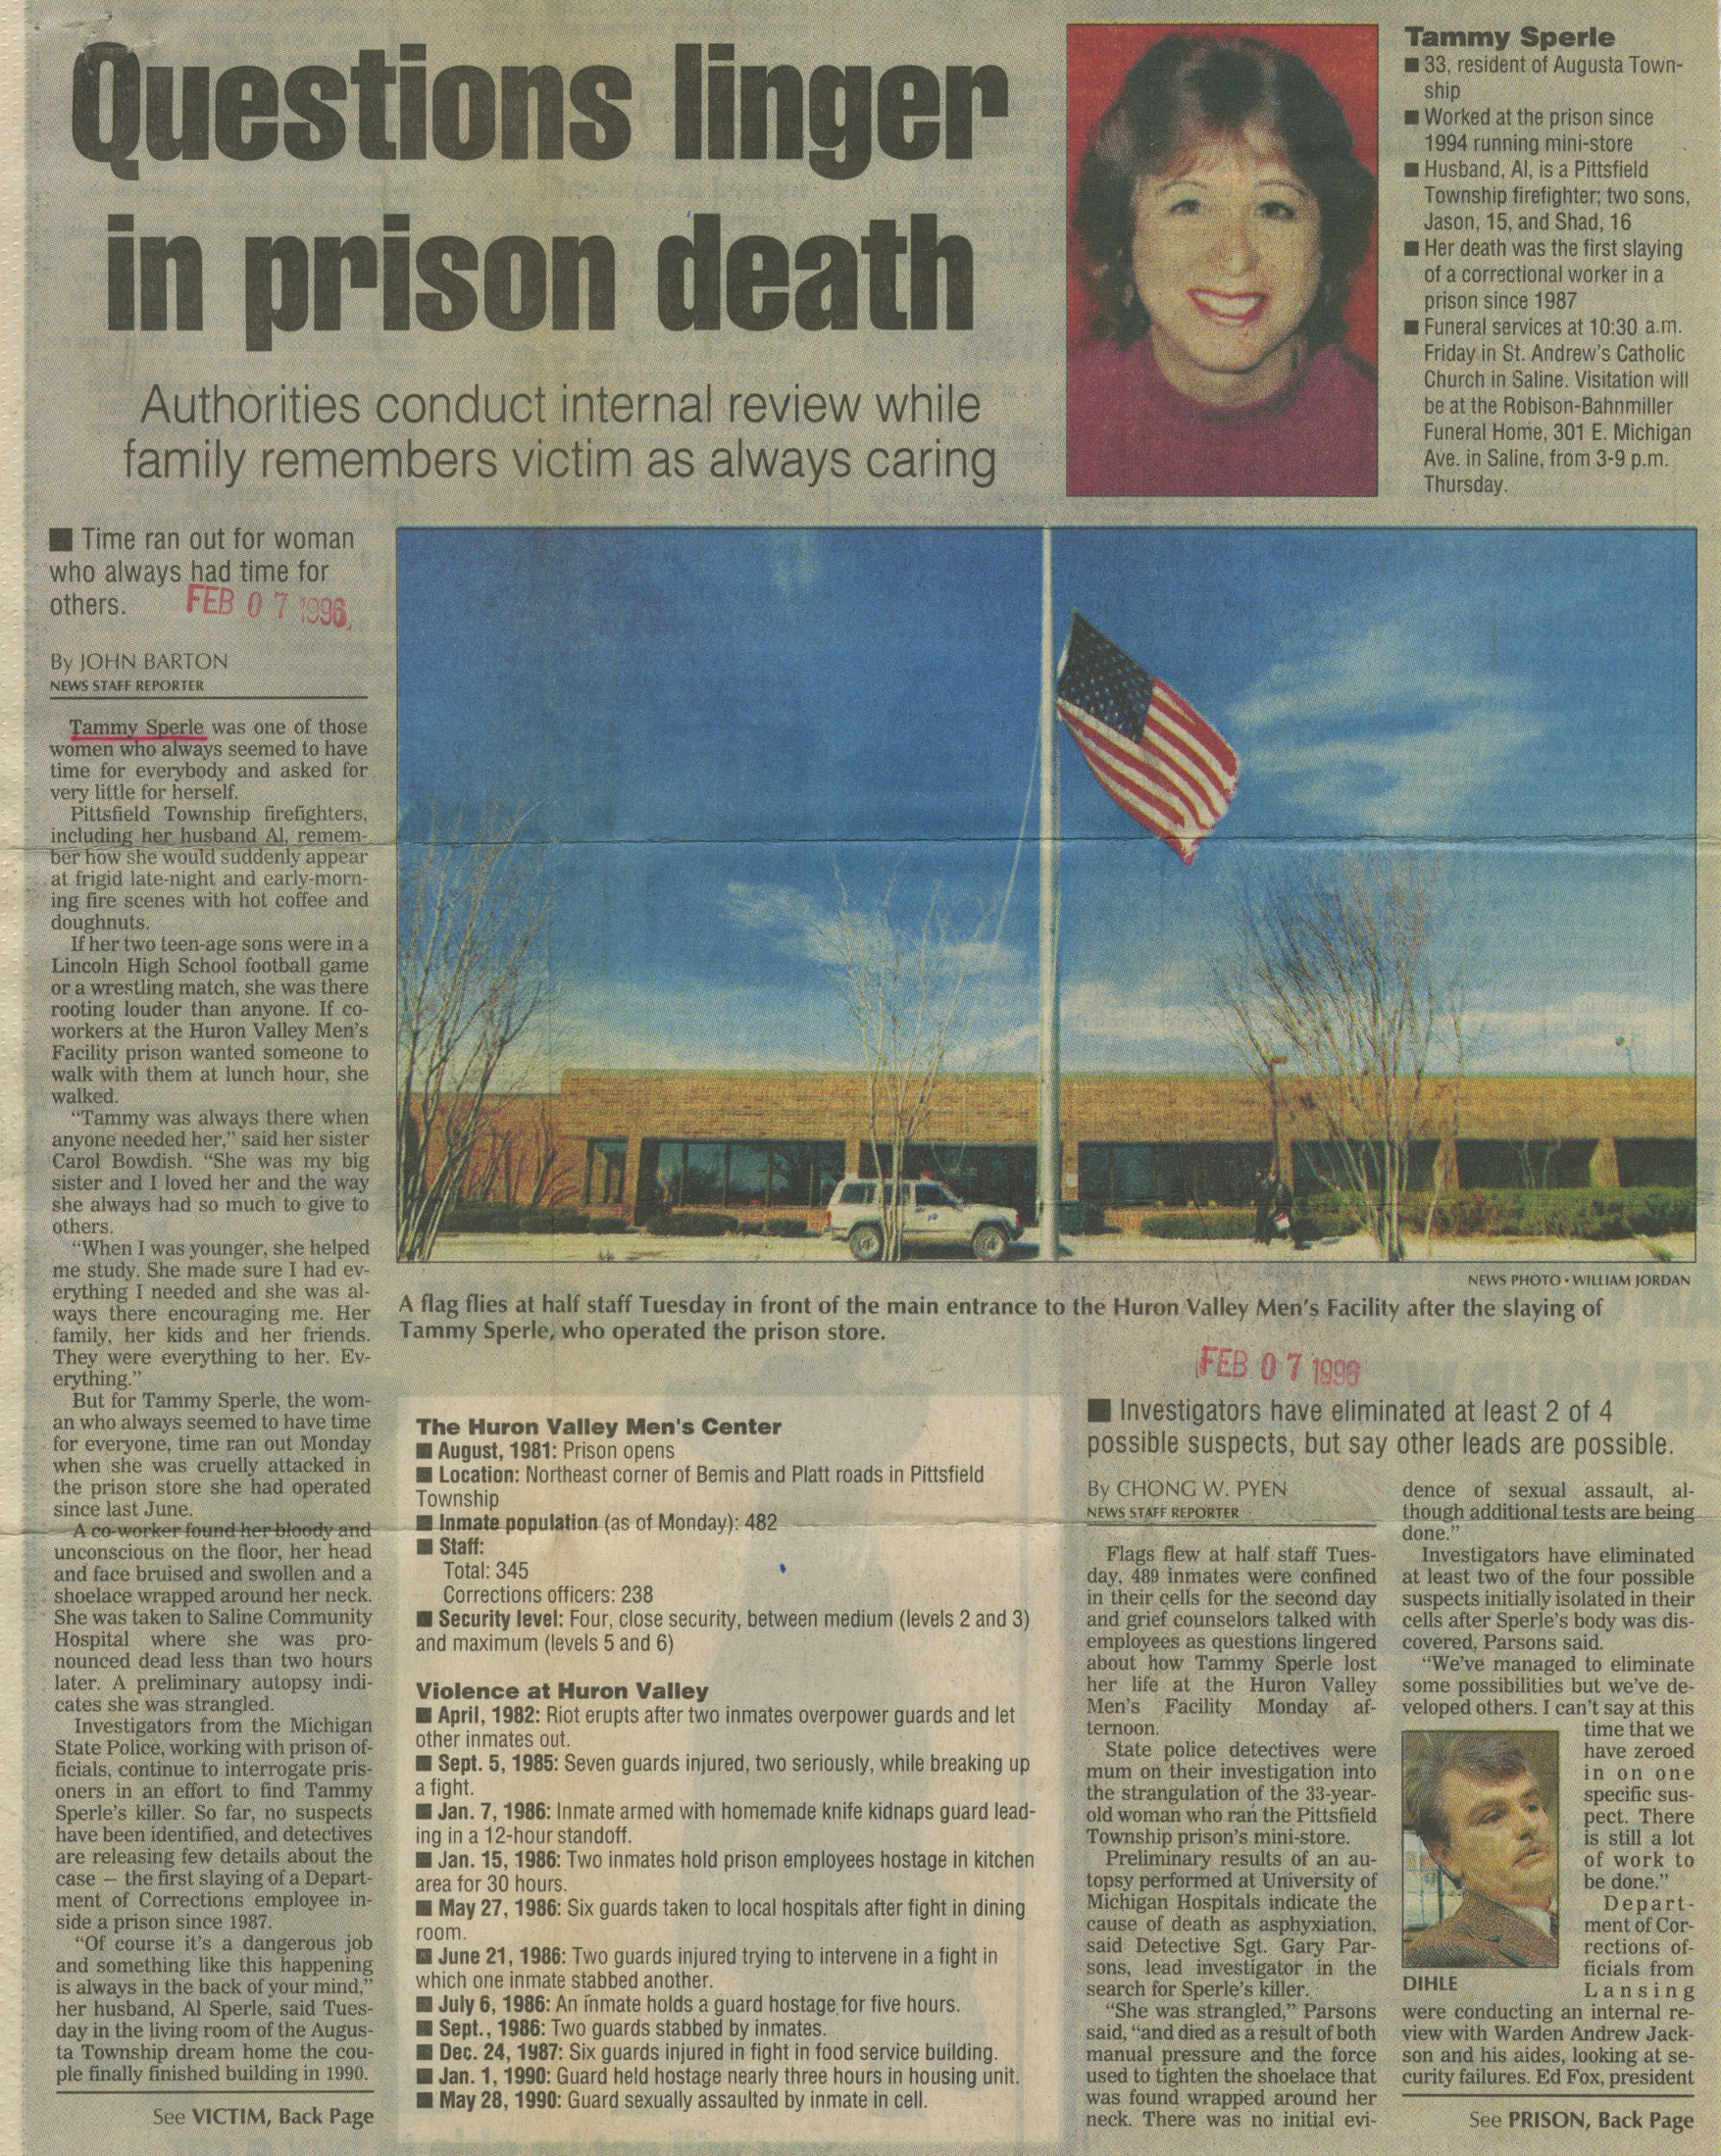 Questions linger in prison death image